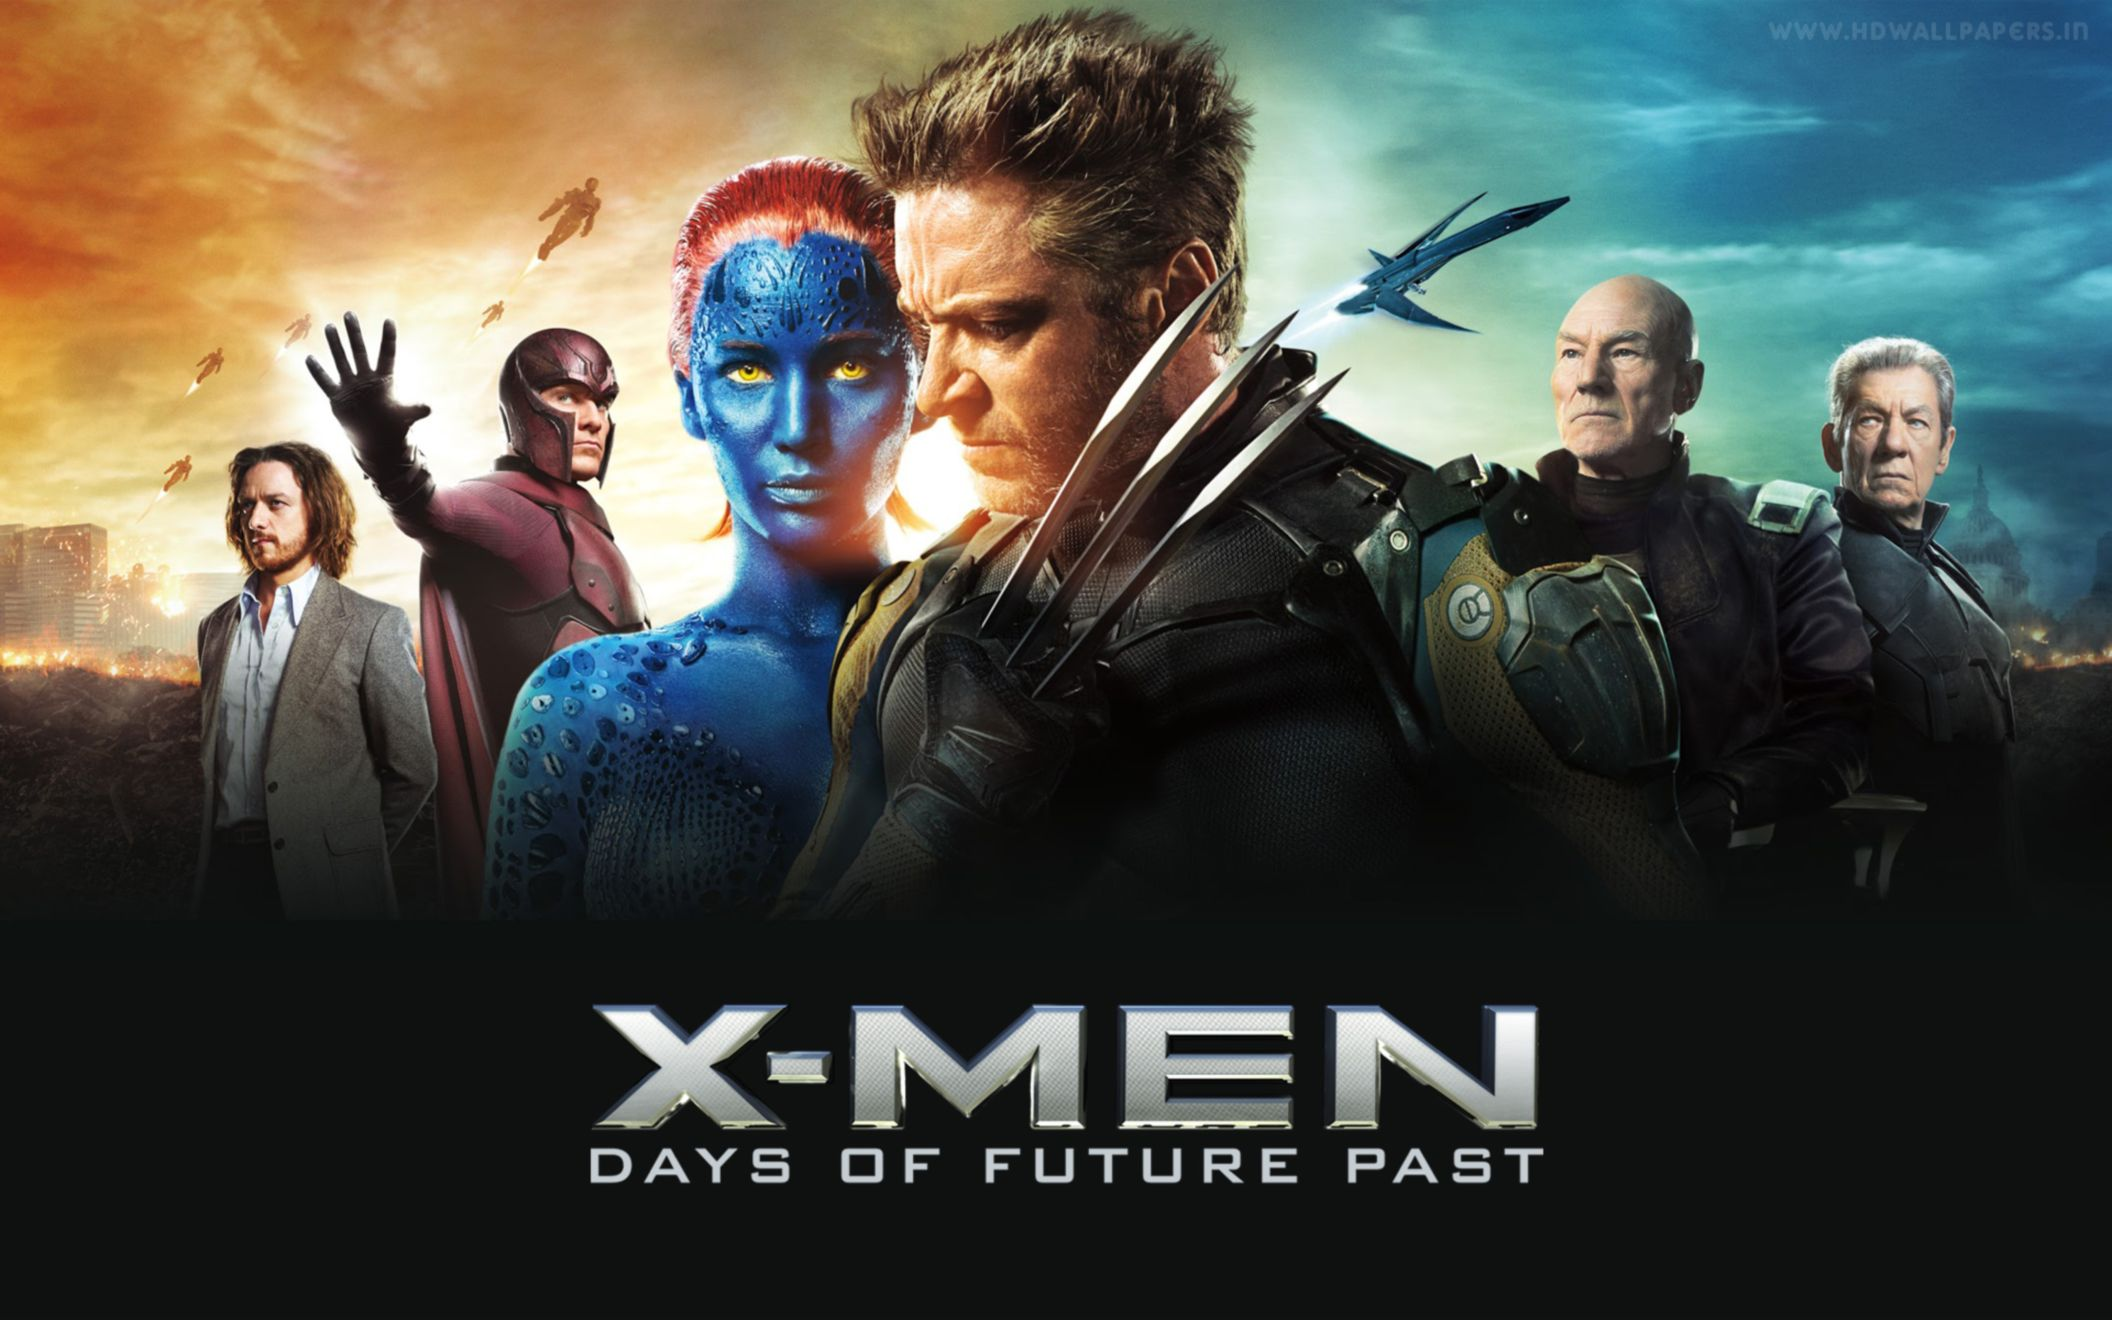 x men days of future past banner wide wallpaper: desktop hd